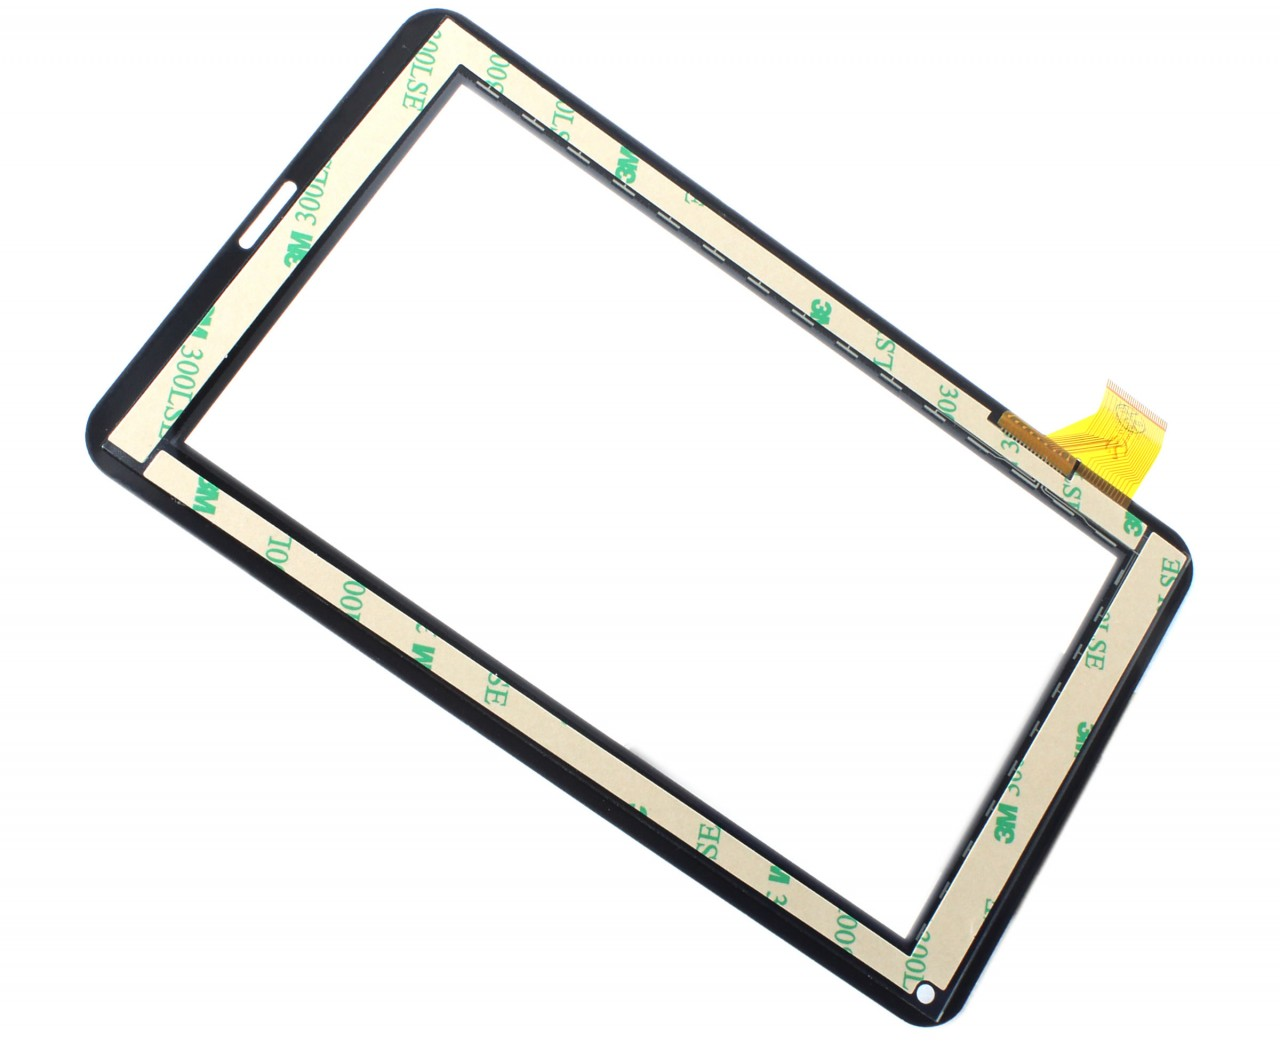 Touchscreen Digitizer Serioux S724 S724TAB Geam Sticla Tableta imagine powerlaptop.ro 2021